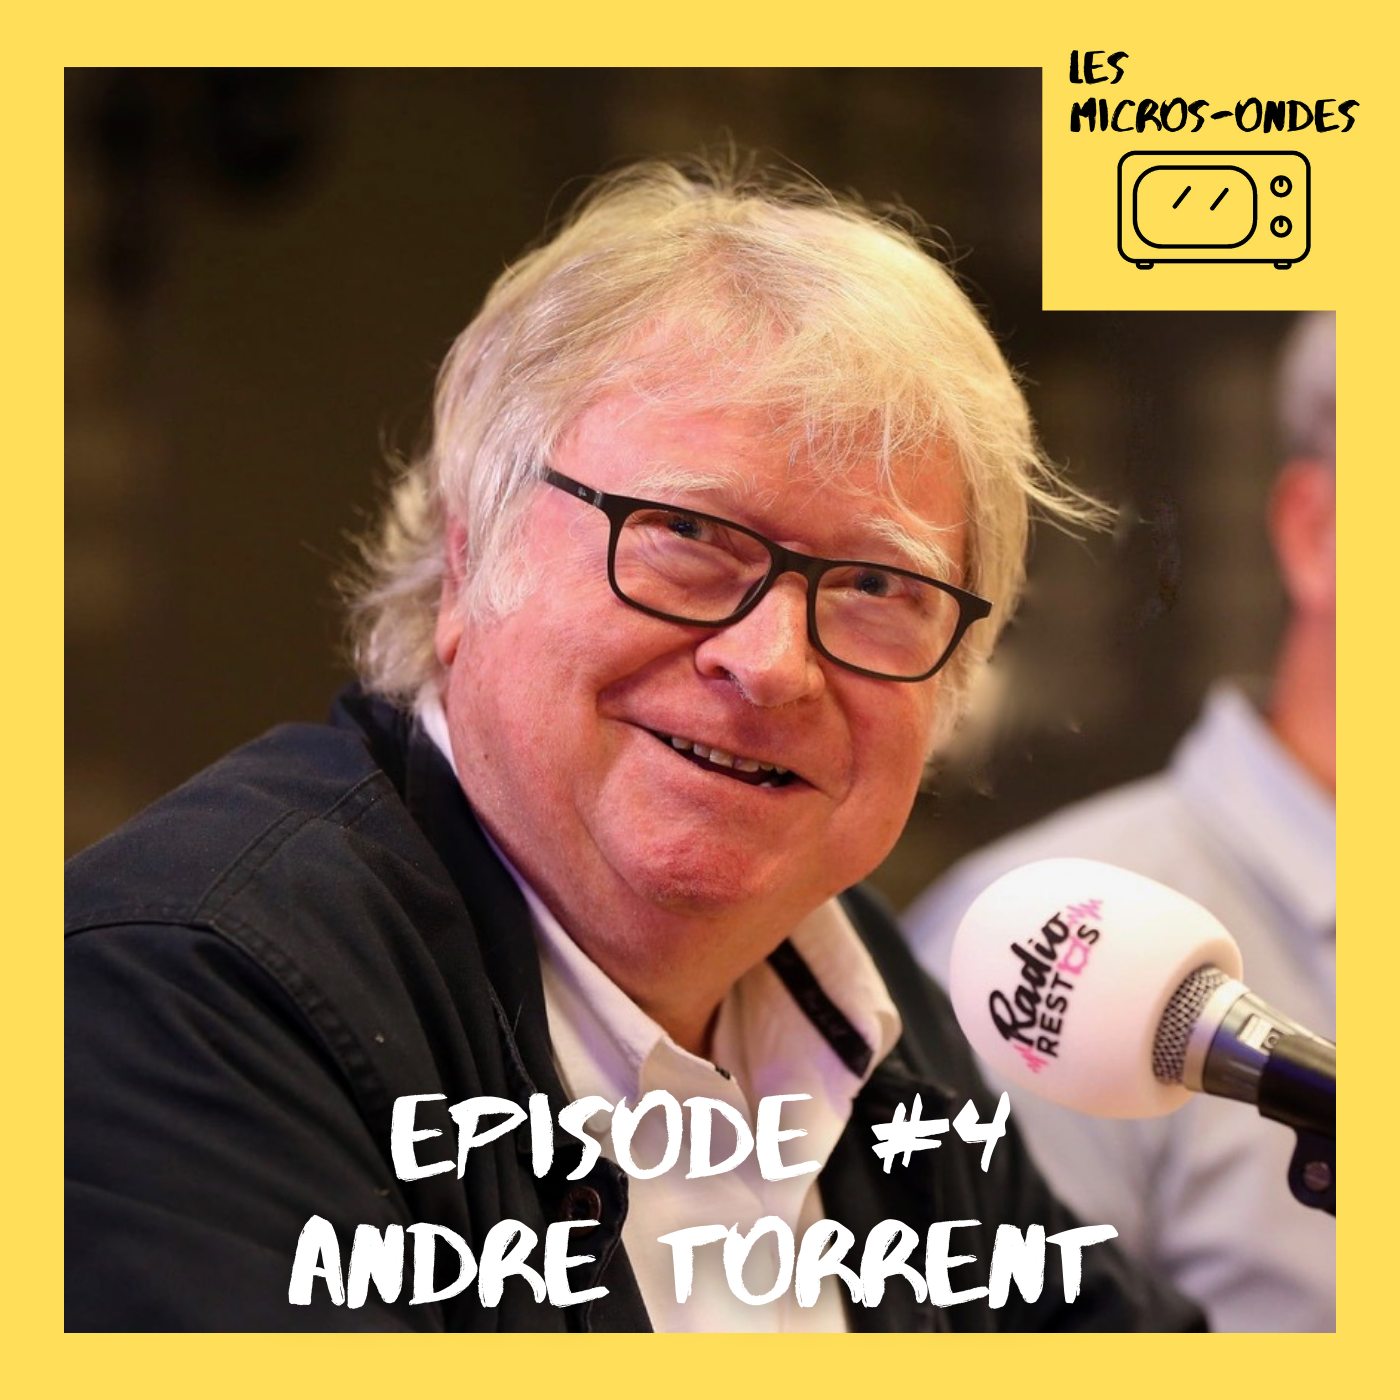 #4 Les Micros-Ondes – André Torrent